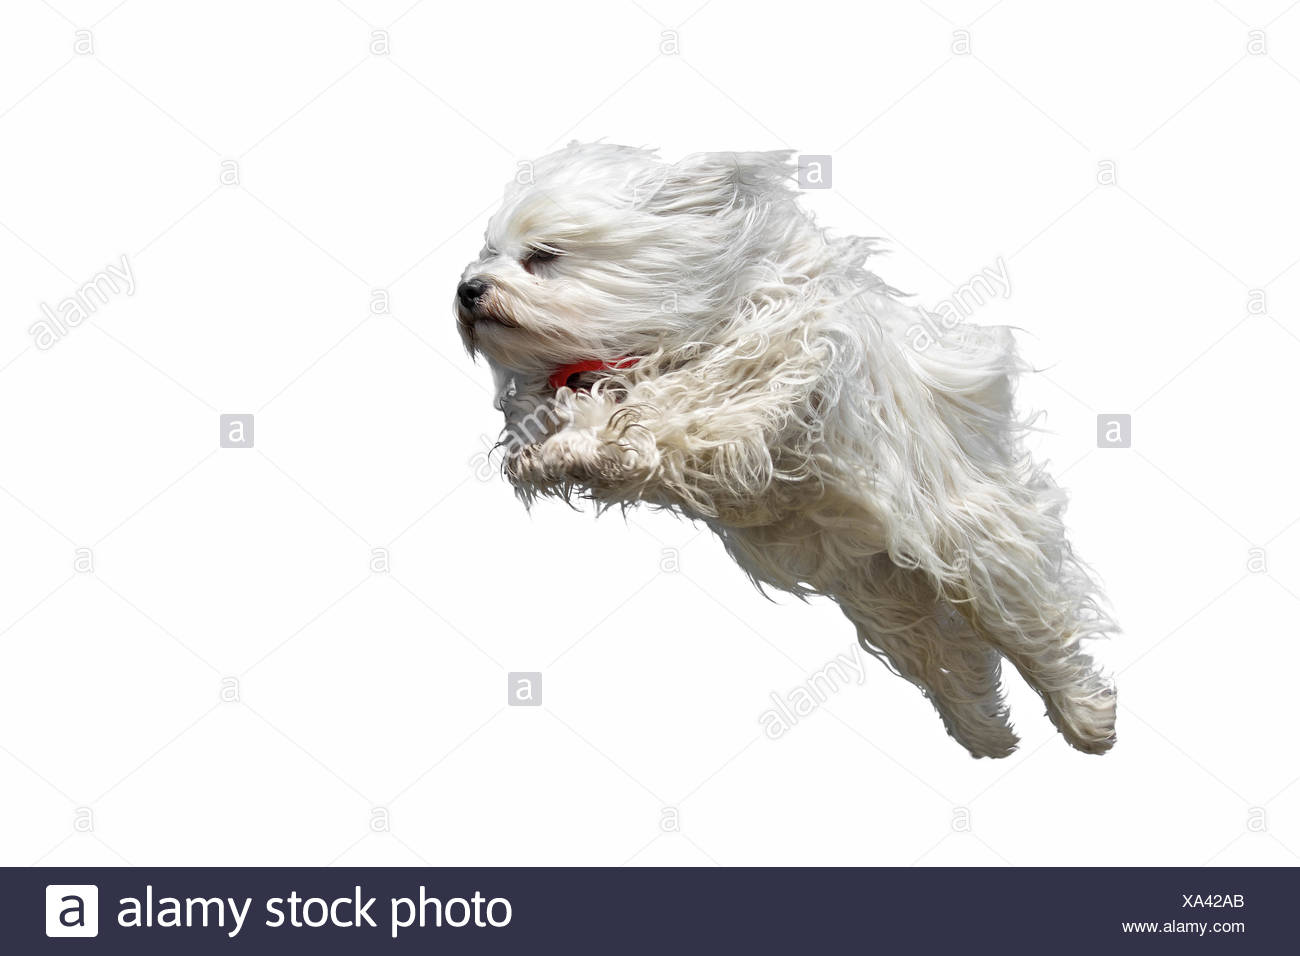 The Plunge - Stock Image